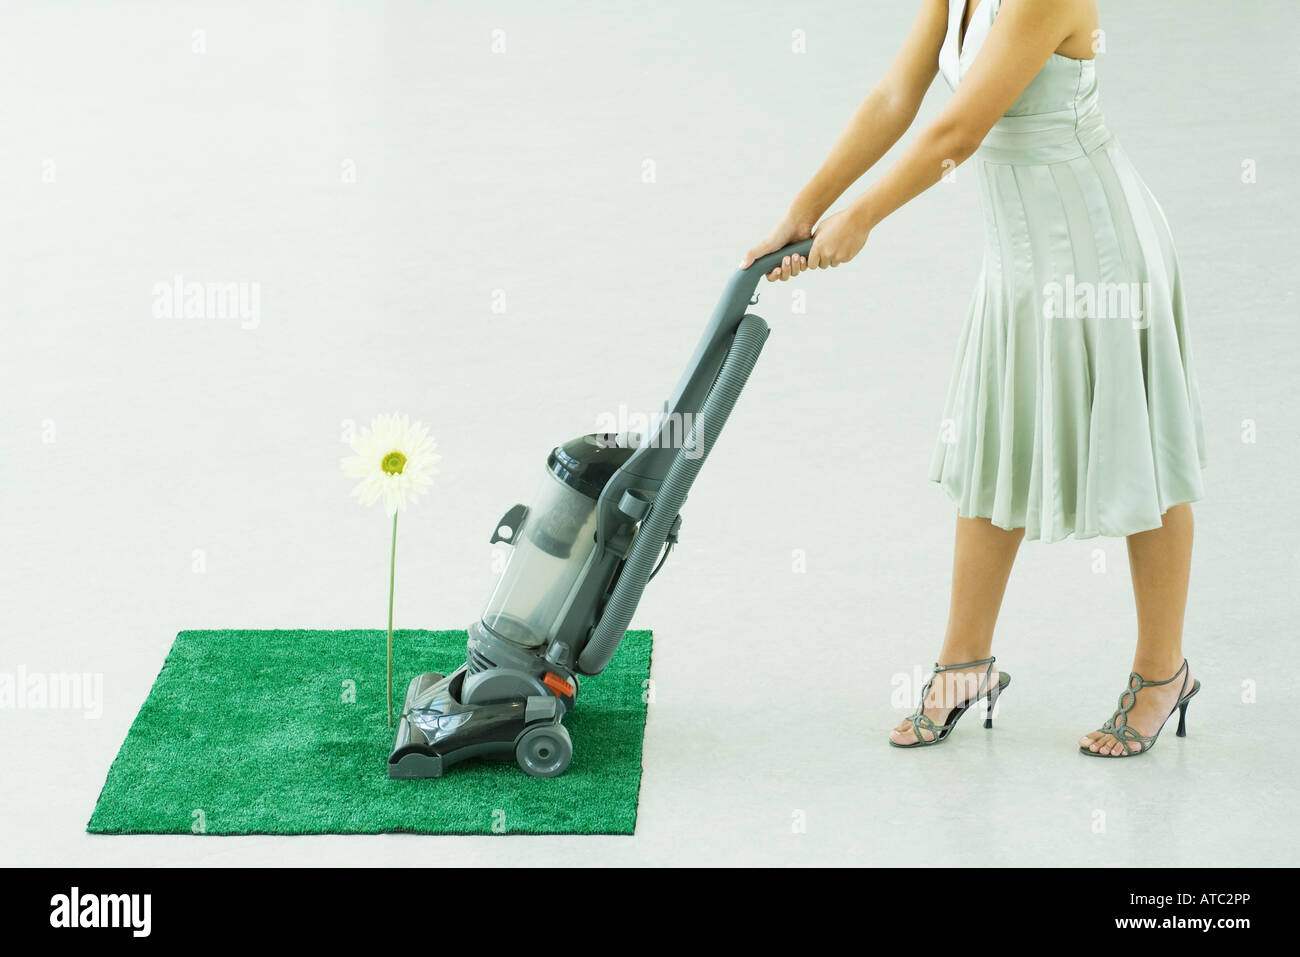 Woman vacuuming square of artificial turf, chest down - Stock Image